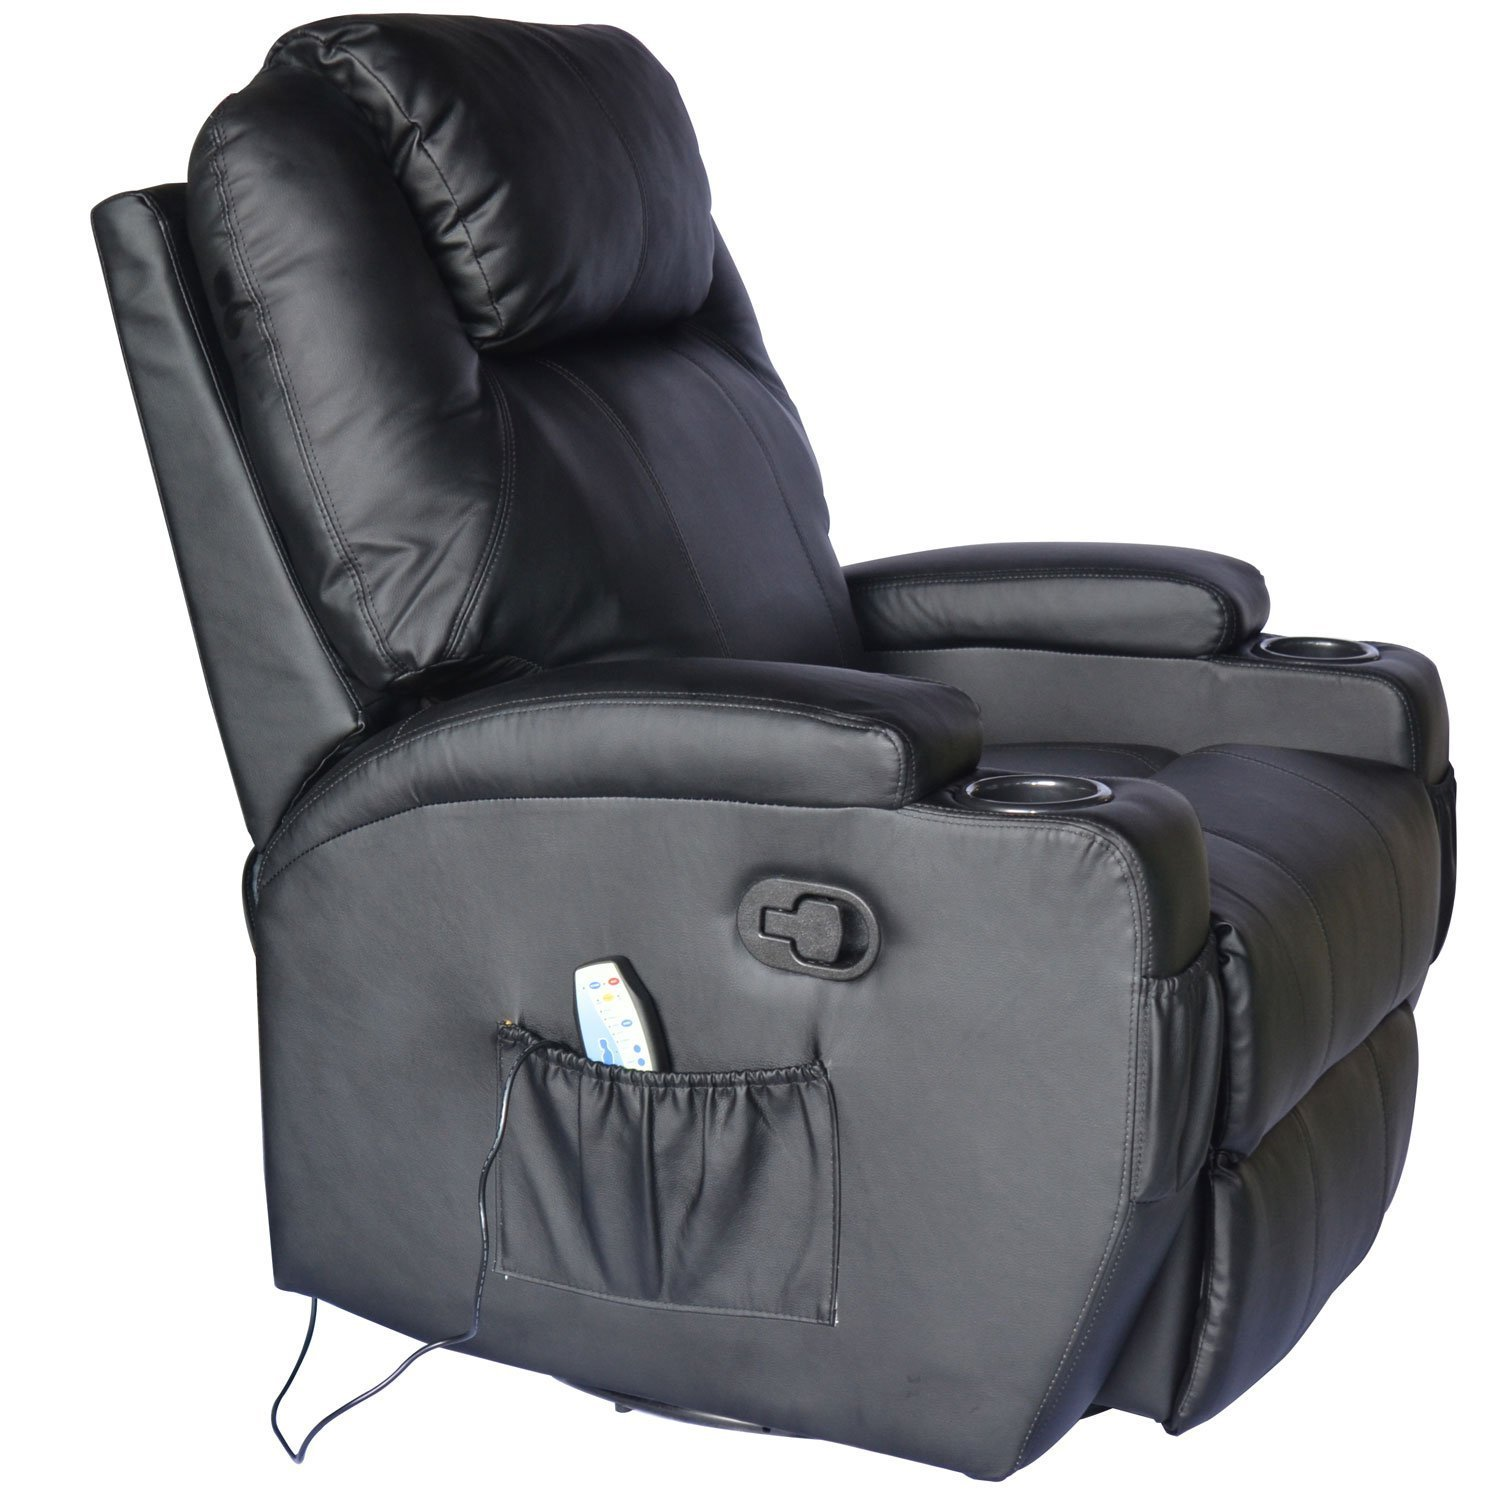 Amazon Hom Heating Vibrating PU Leather Massage Recliner